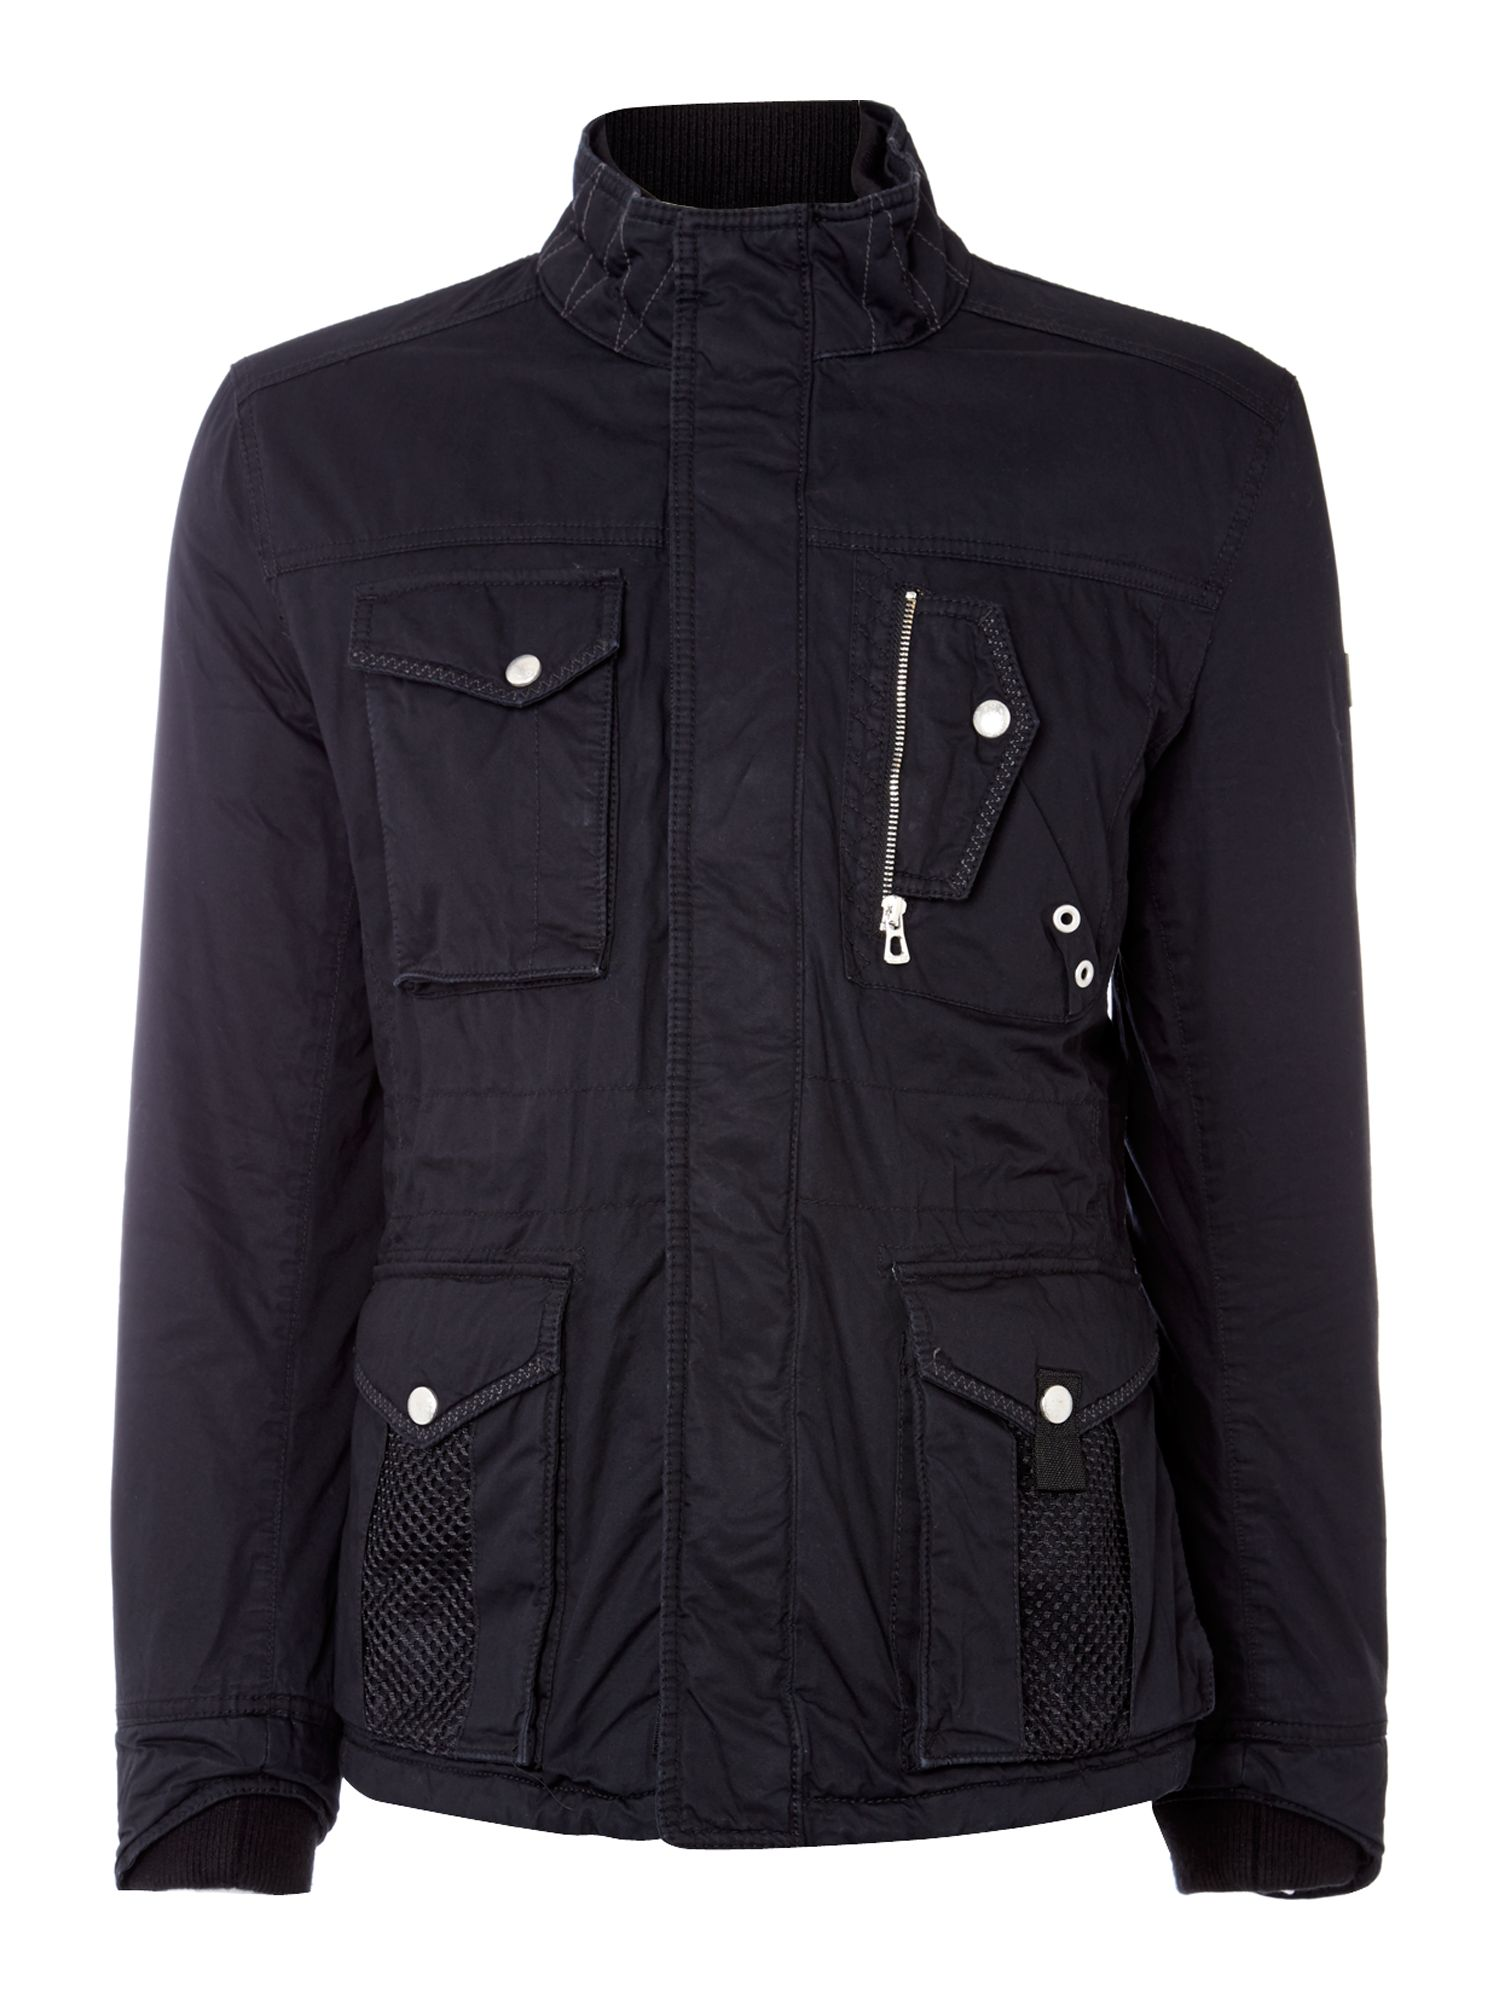 Four pocket field jacket